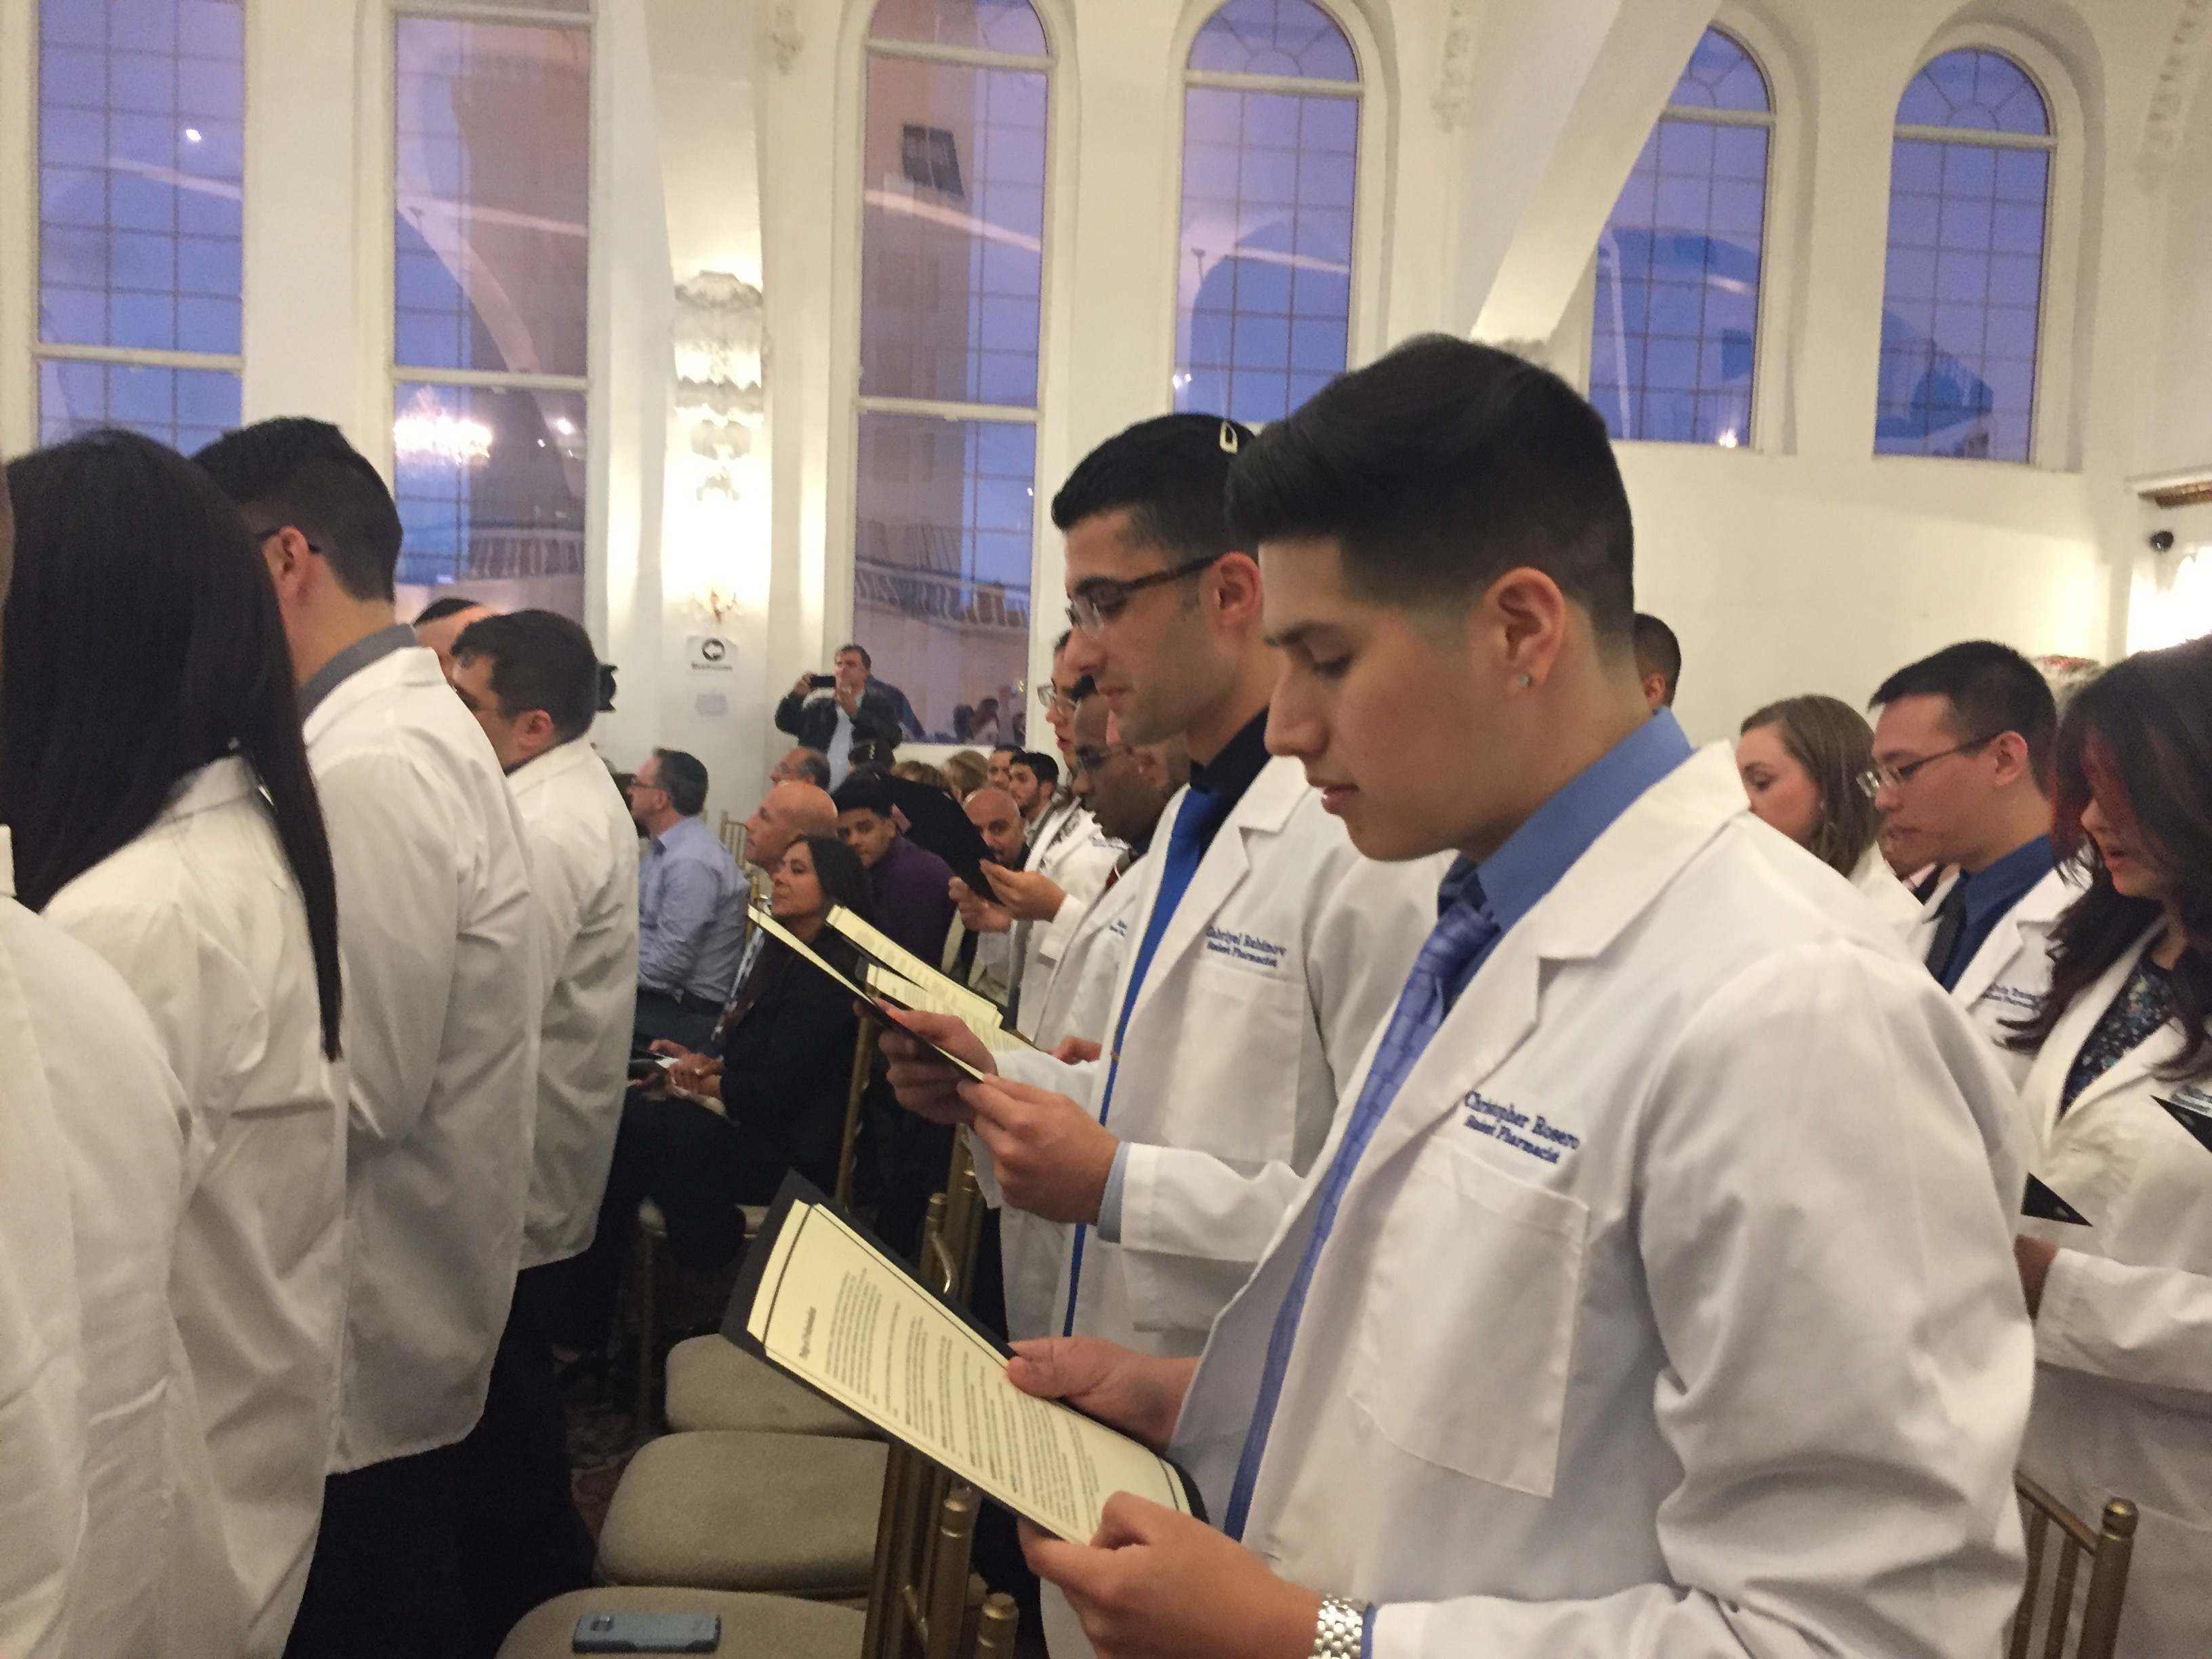 Members of Touro College of Pharmacy Class of 2020 recite the Oath of a Pharmacist during their White Coat Ceremony at the Al Hambra Ballroom in Harlem on Sept. 29.